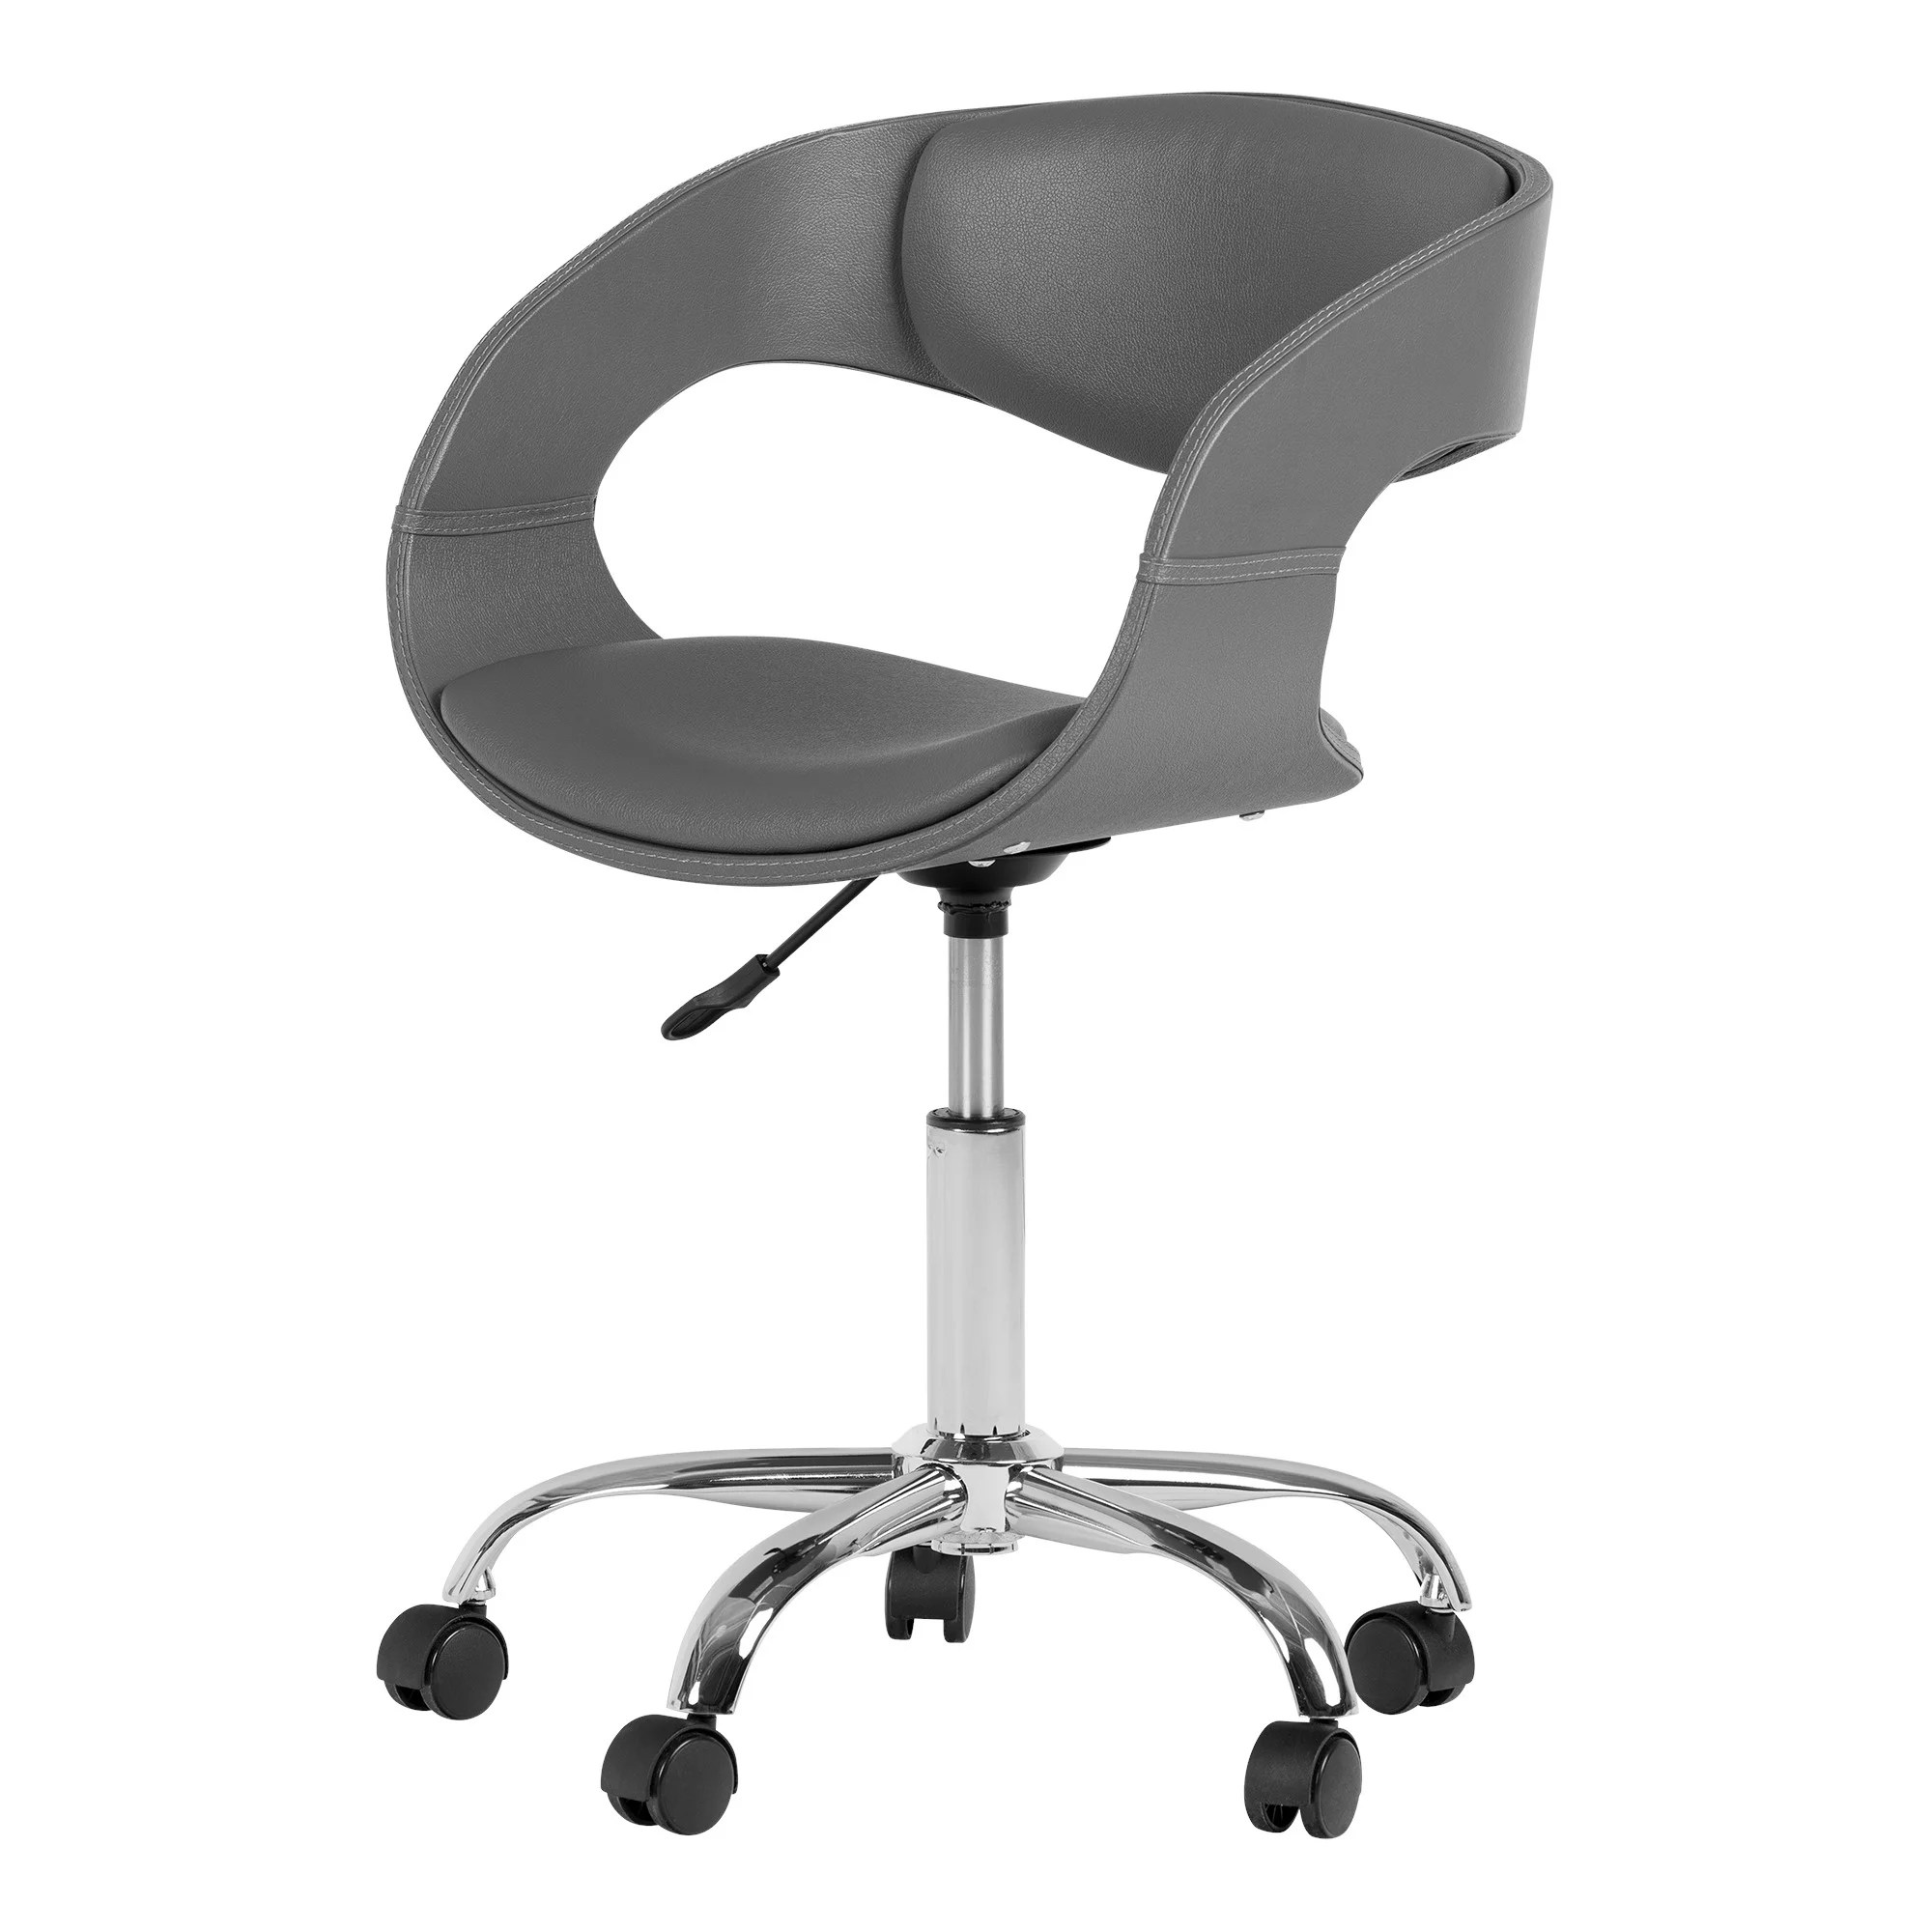 Chair On Wheels South Shore Annexe Faux Leather Adjustable Office Chair On Wheels